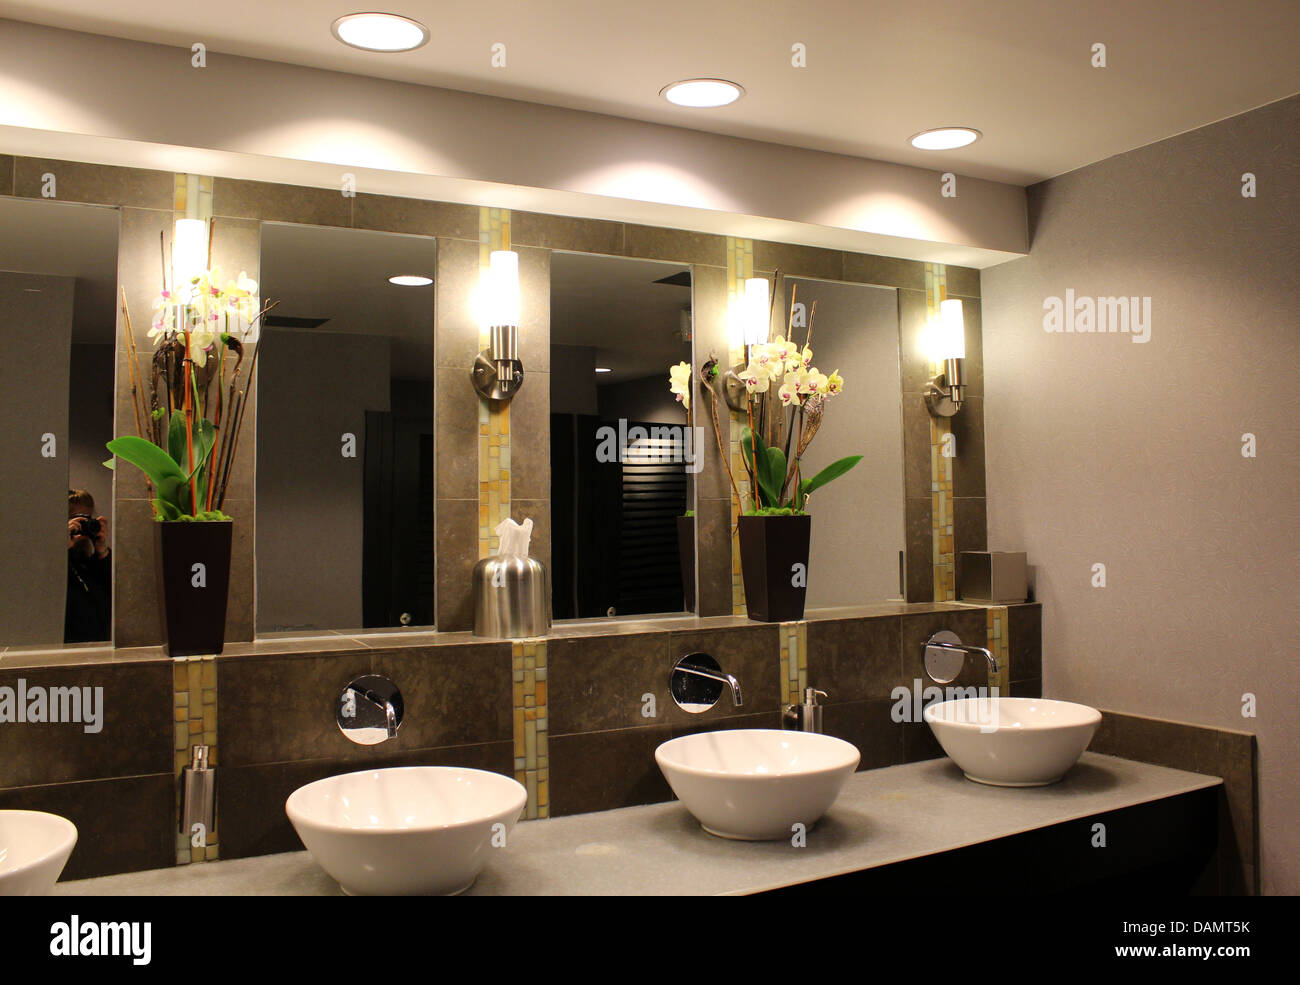 Fanciest Bathroom: Ultra Chic Bathroom With Fancy Sinks,mirrors And Flower